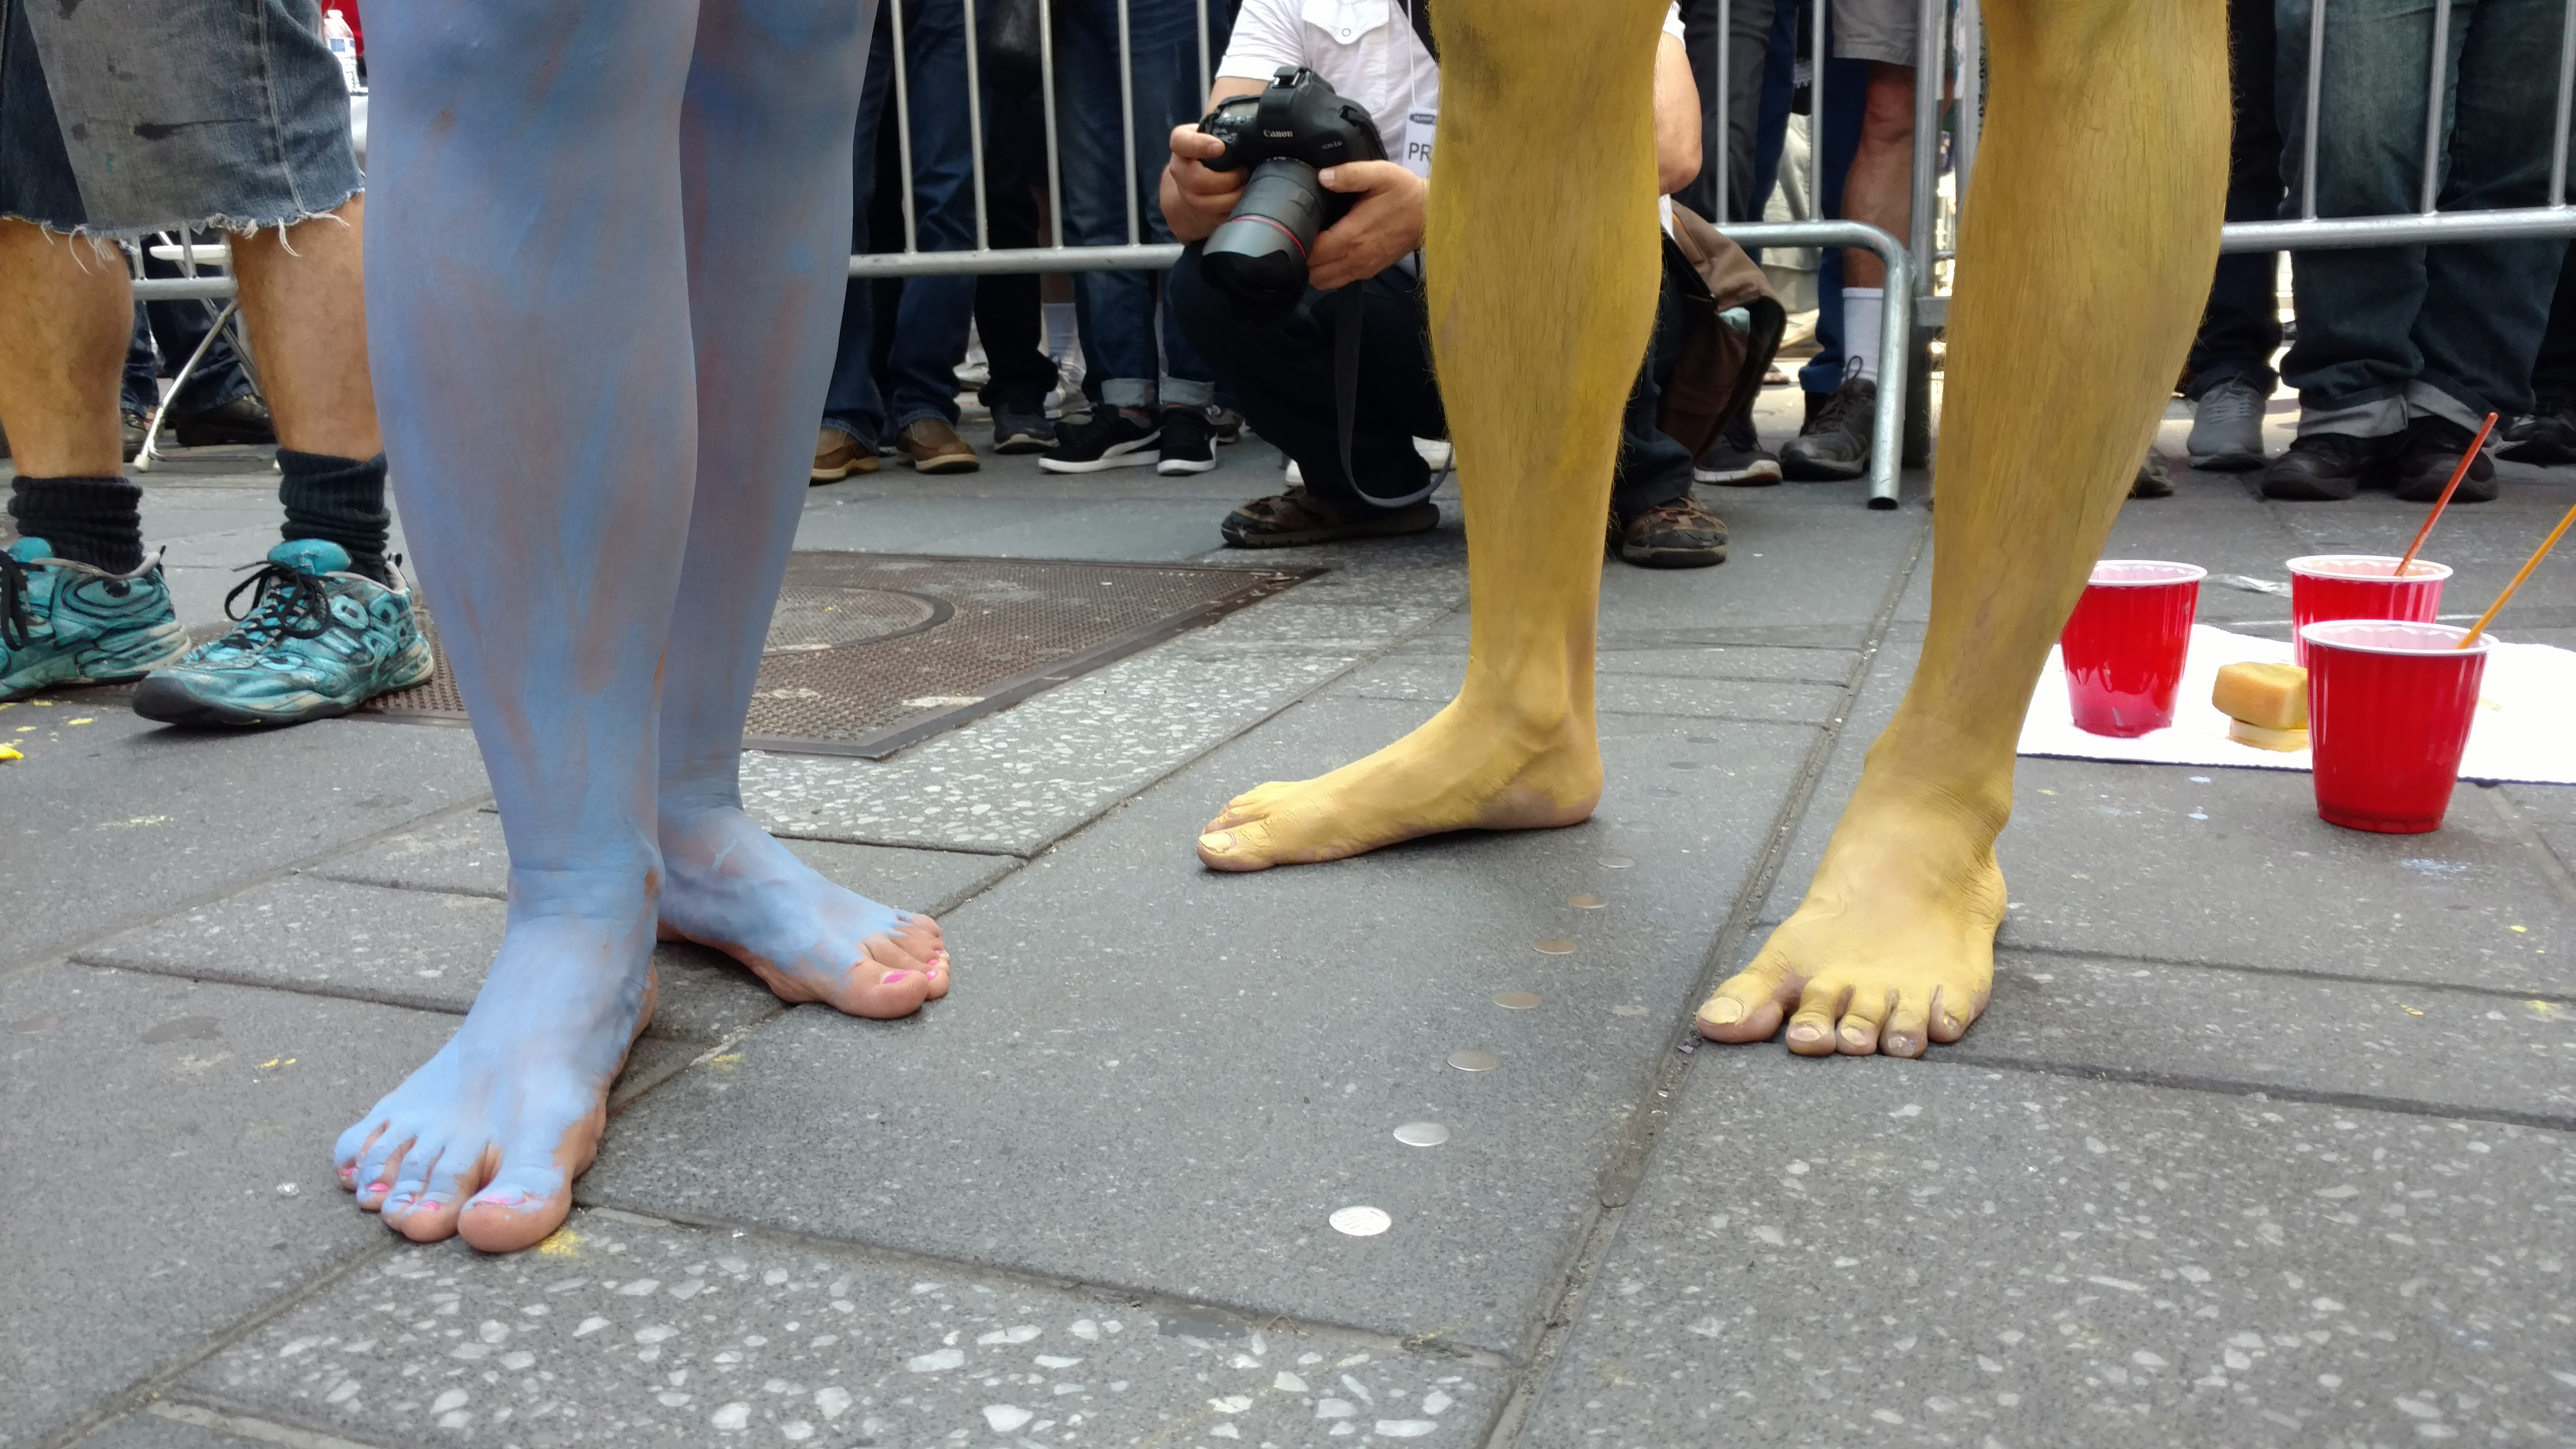 Nude Body Positivity Protest Times Square New York City